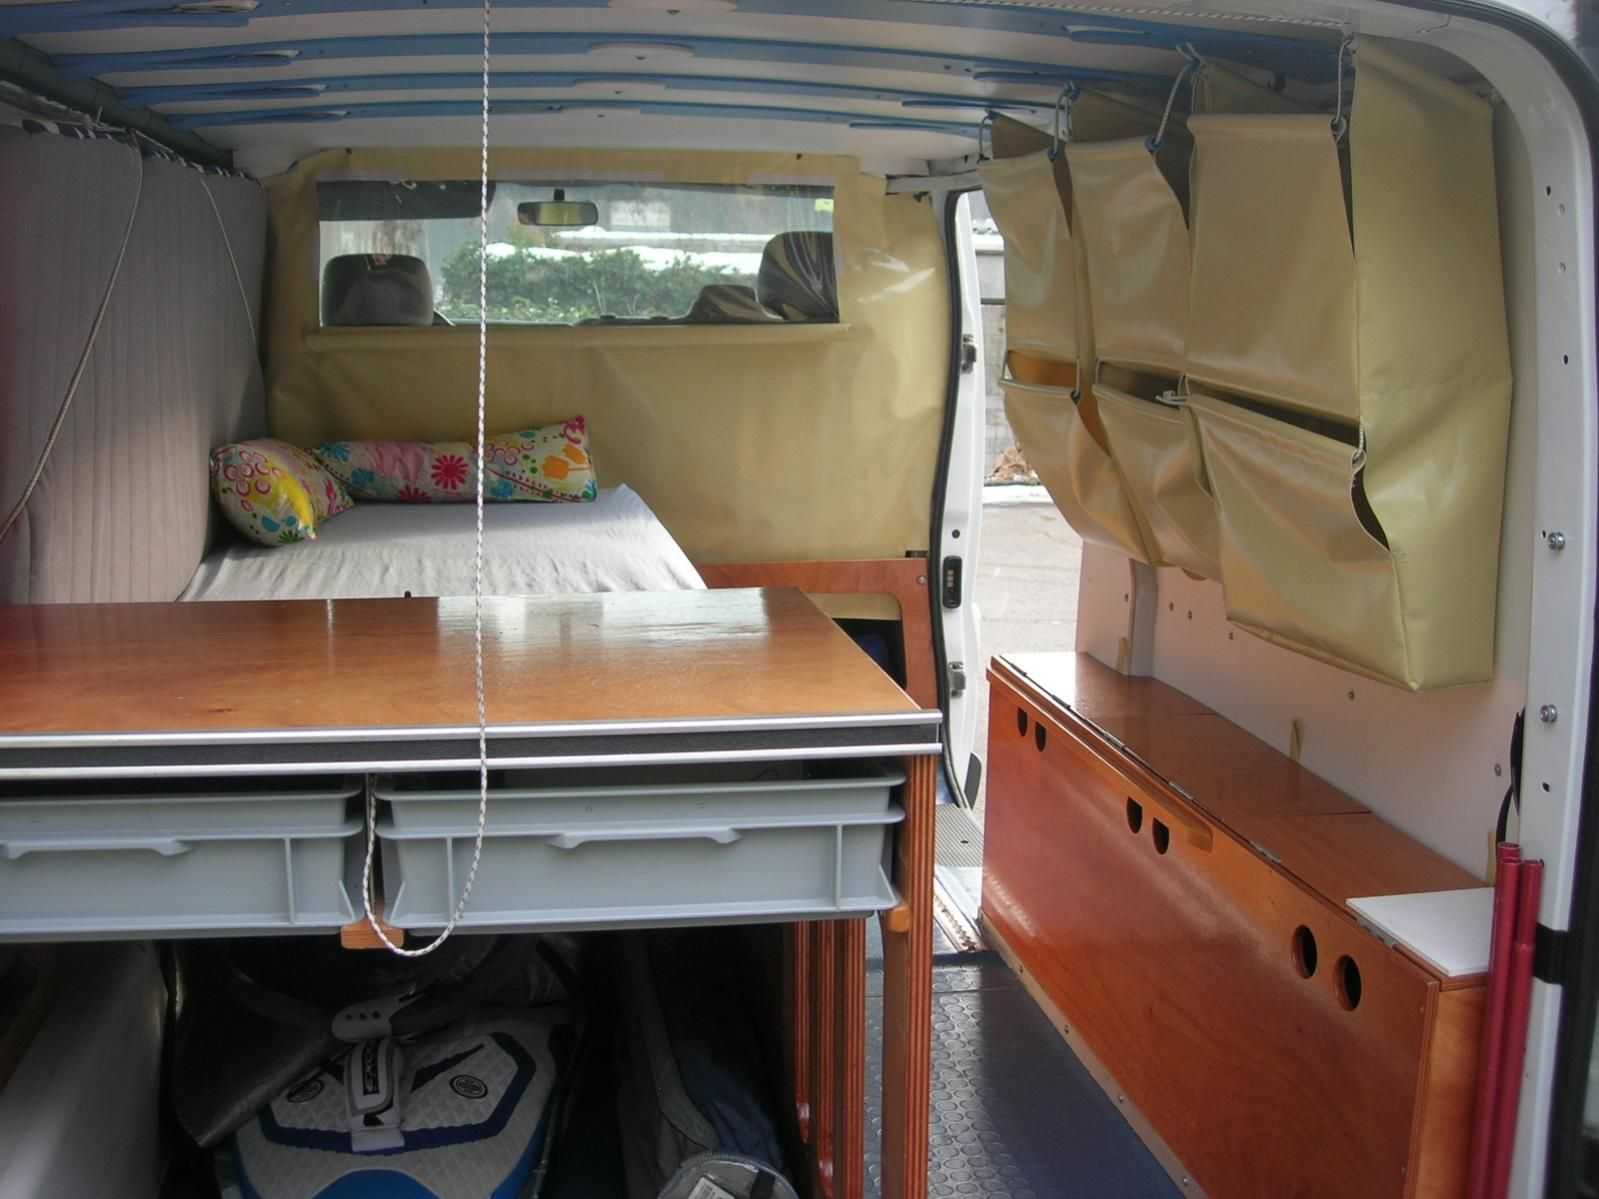 opel vivaro surfbus camper individualausbau camper wahn pinte. Black Bedroom Furniture Sets. Home Design Ideas